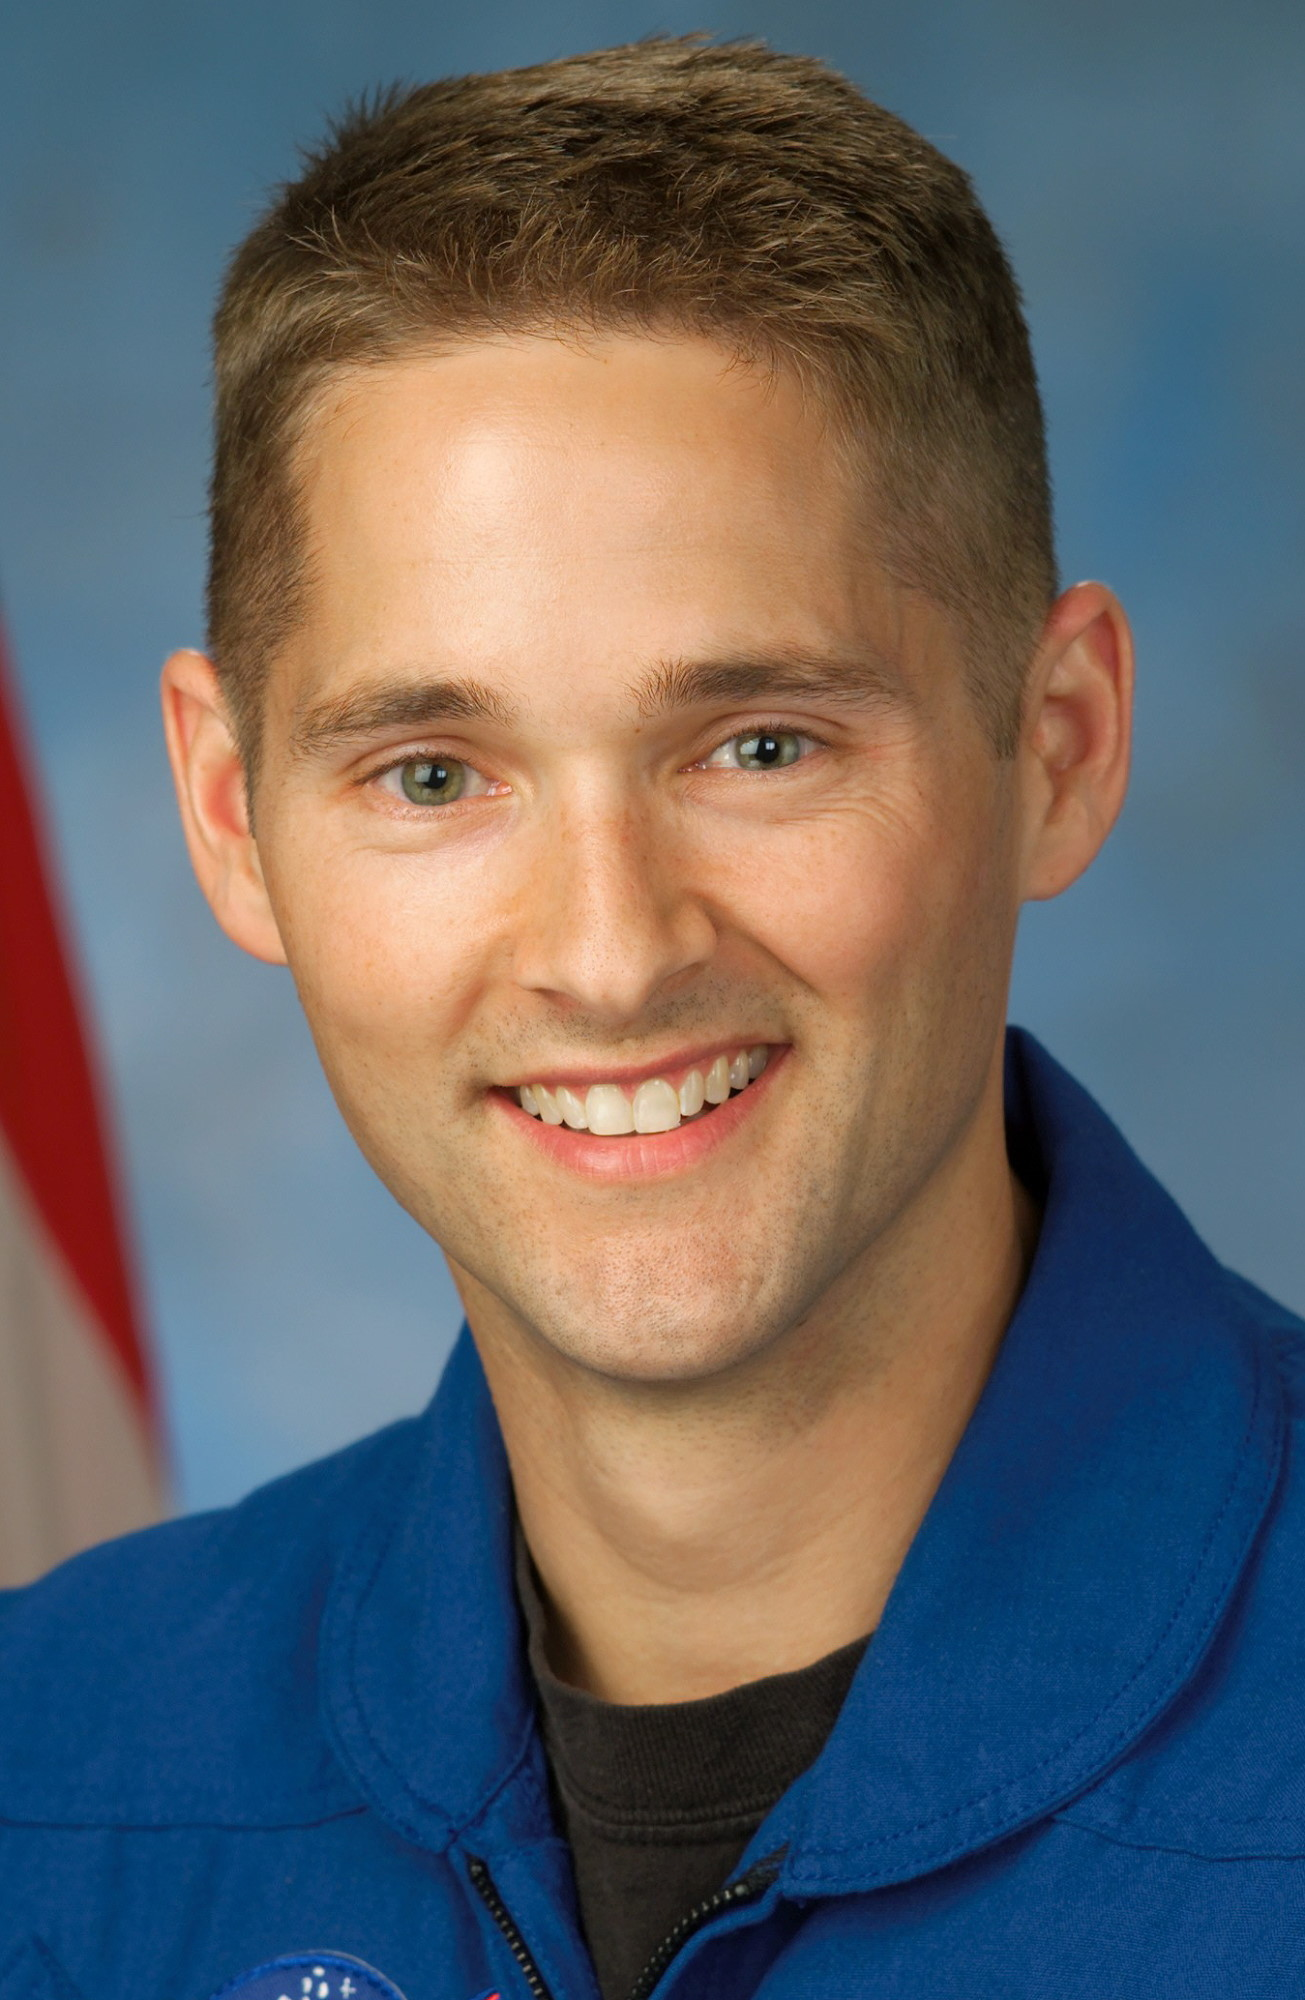 Astronaut Biography: James Dutton